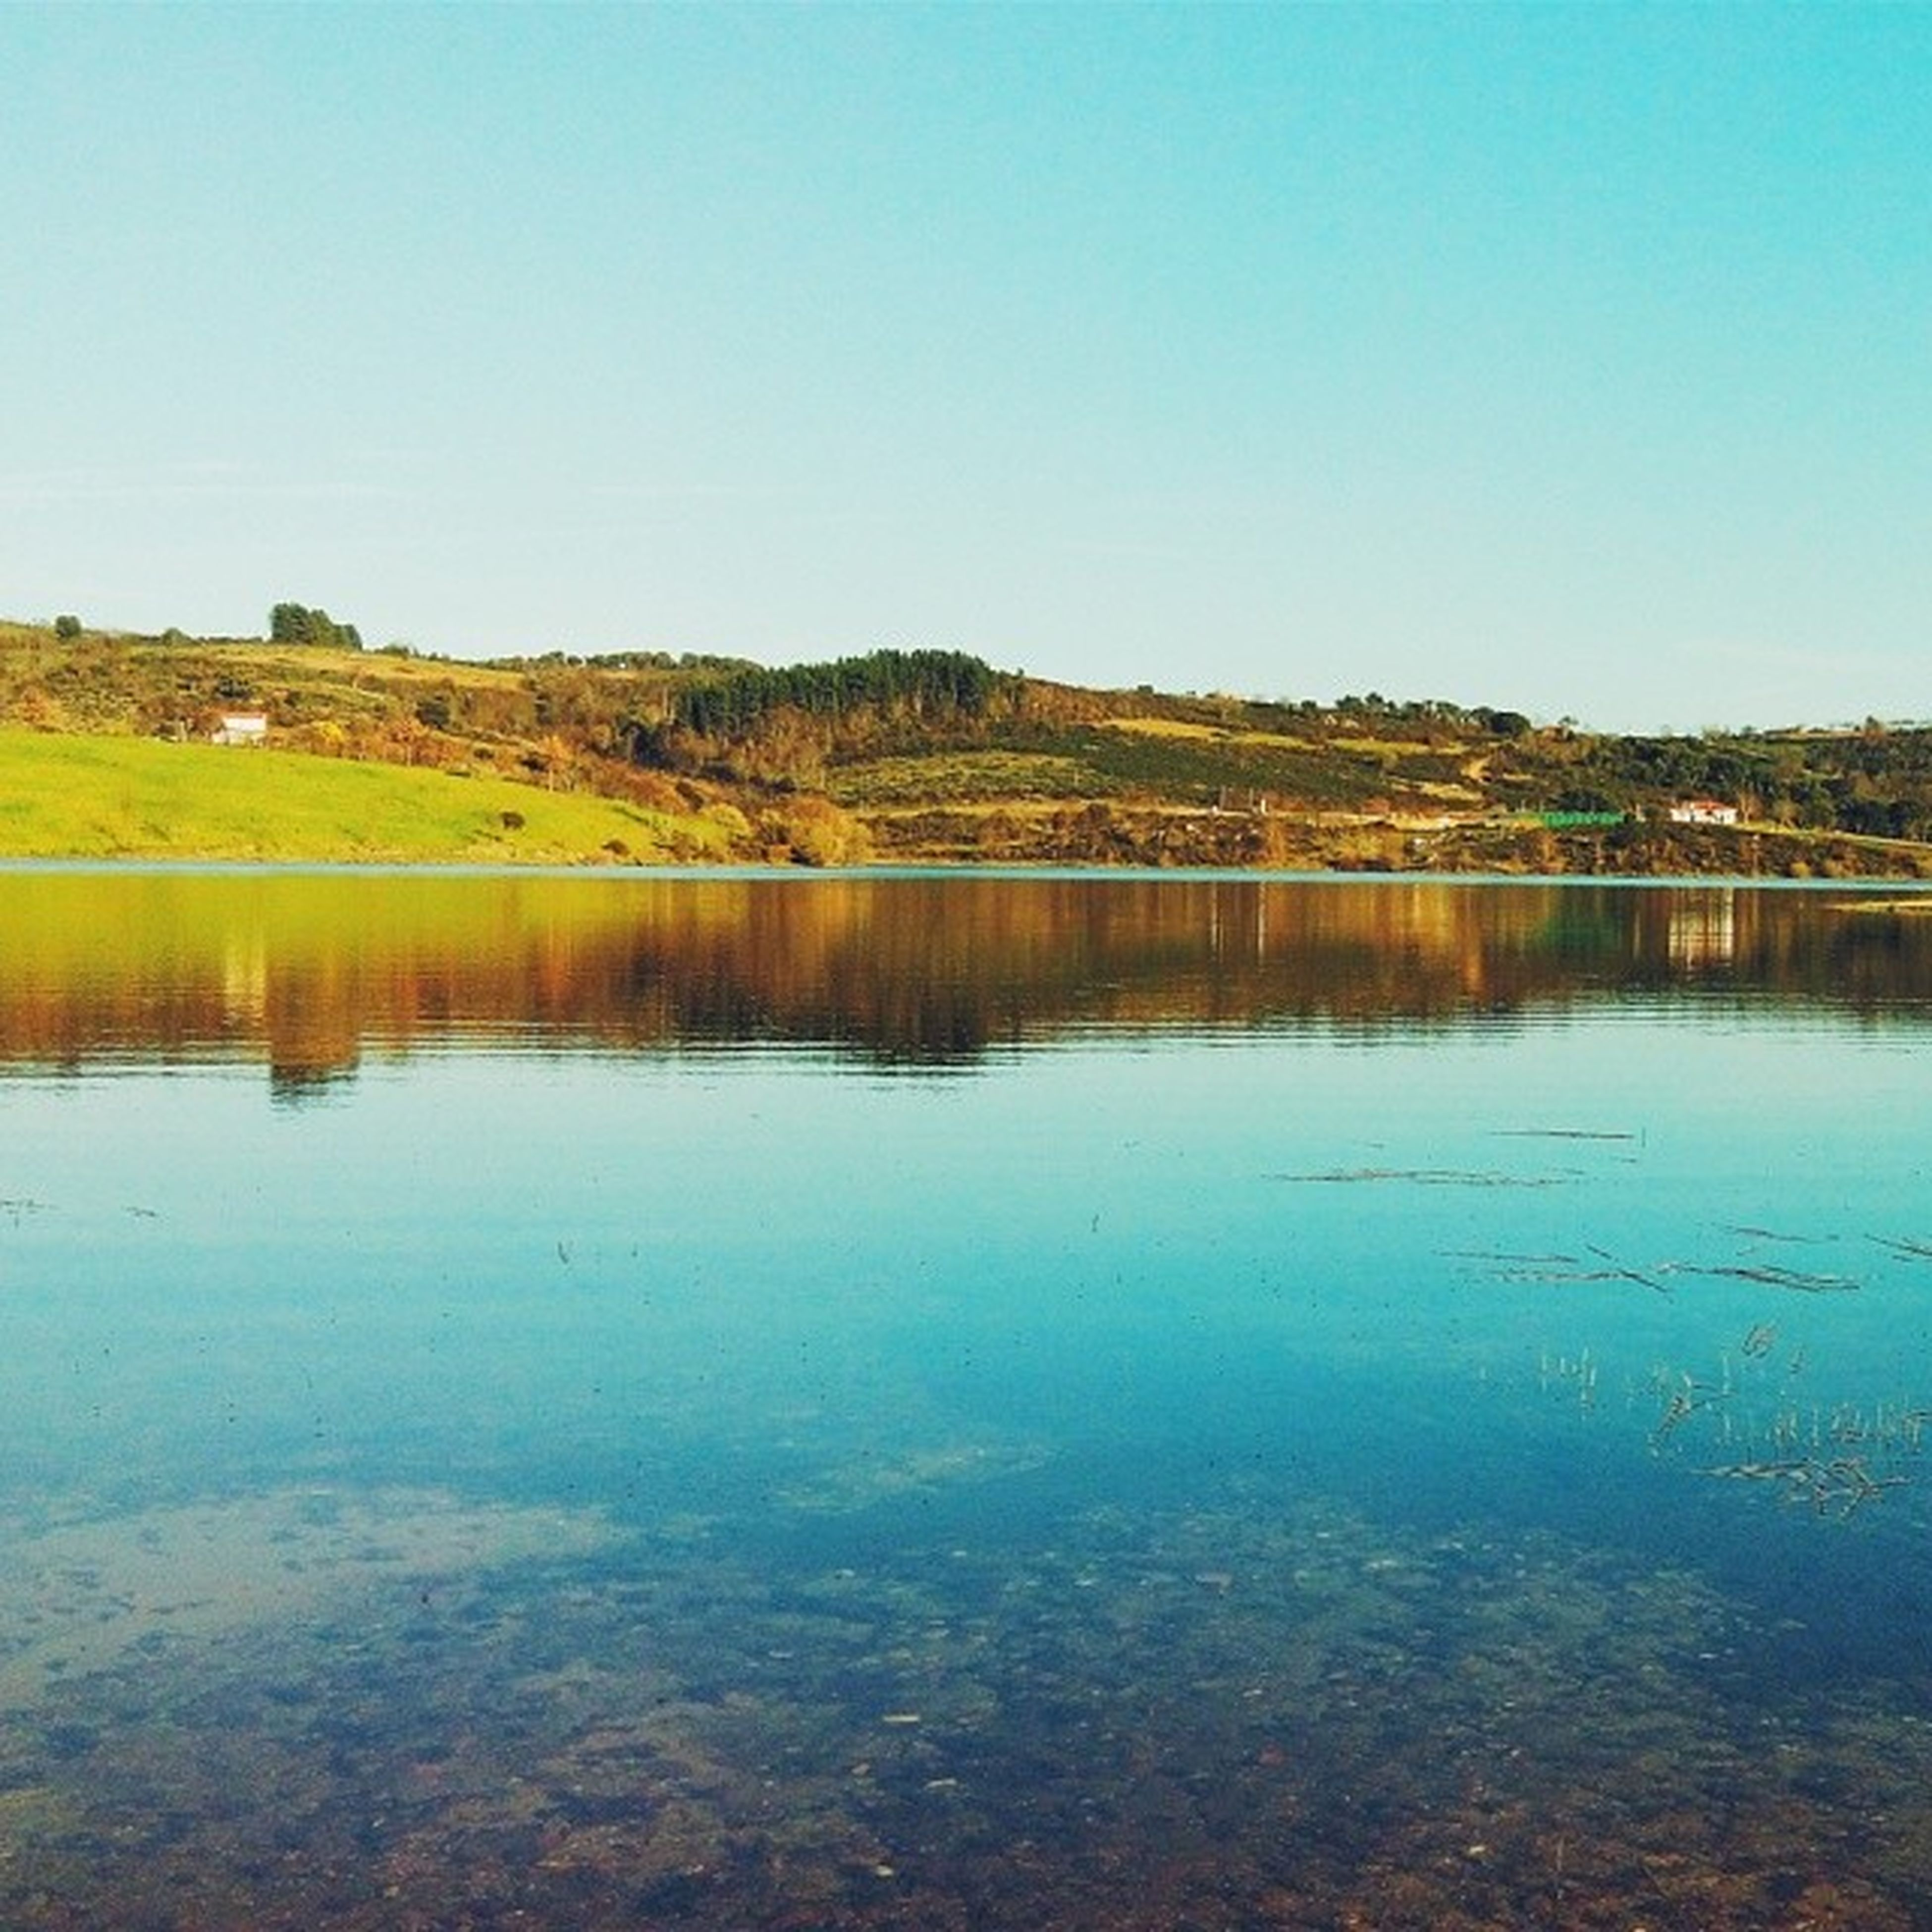 clear sky, water, blue, reflection, lake, tranquil scene, tranquility, copy space, scenics, beauty in nature, waterfront, nature, tree, idyllic, standing water, calm, day, no people, outdoors, non-urban scene